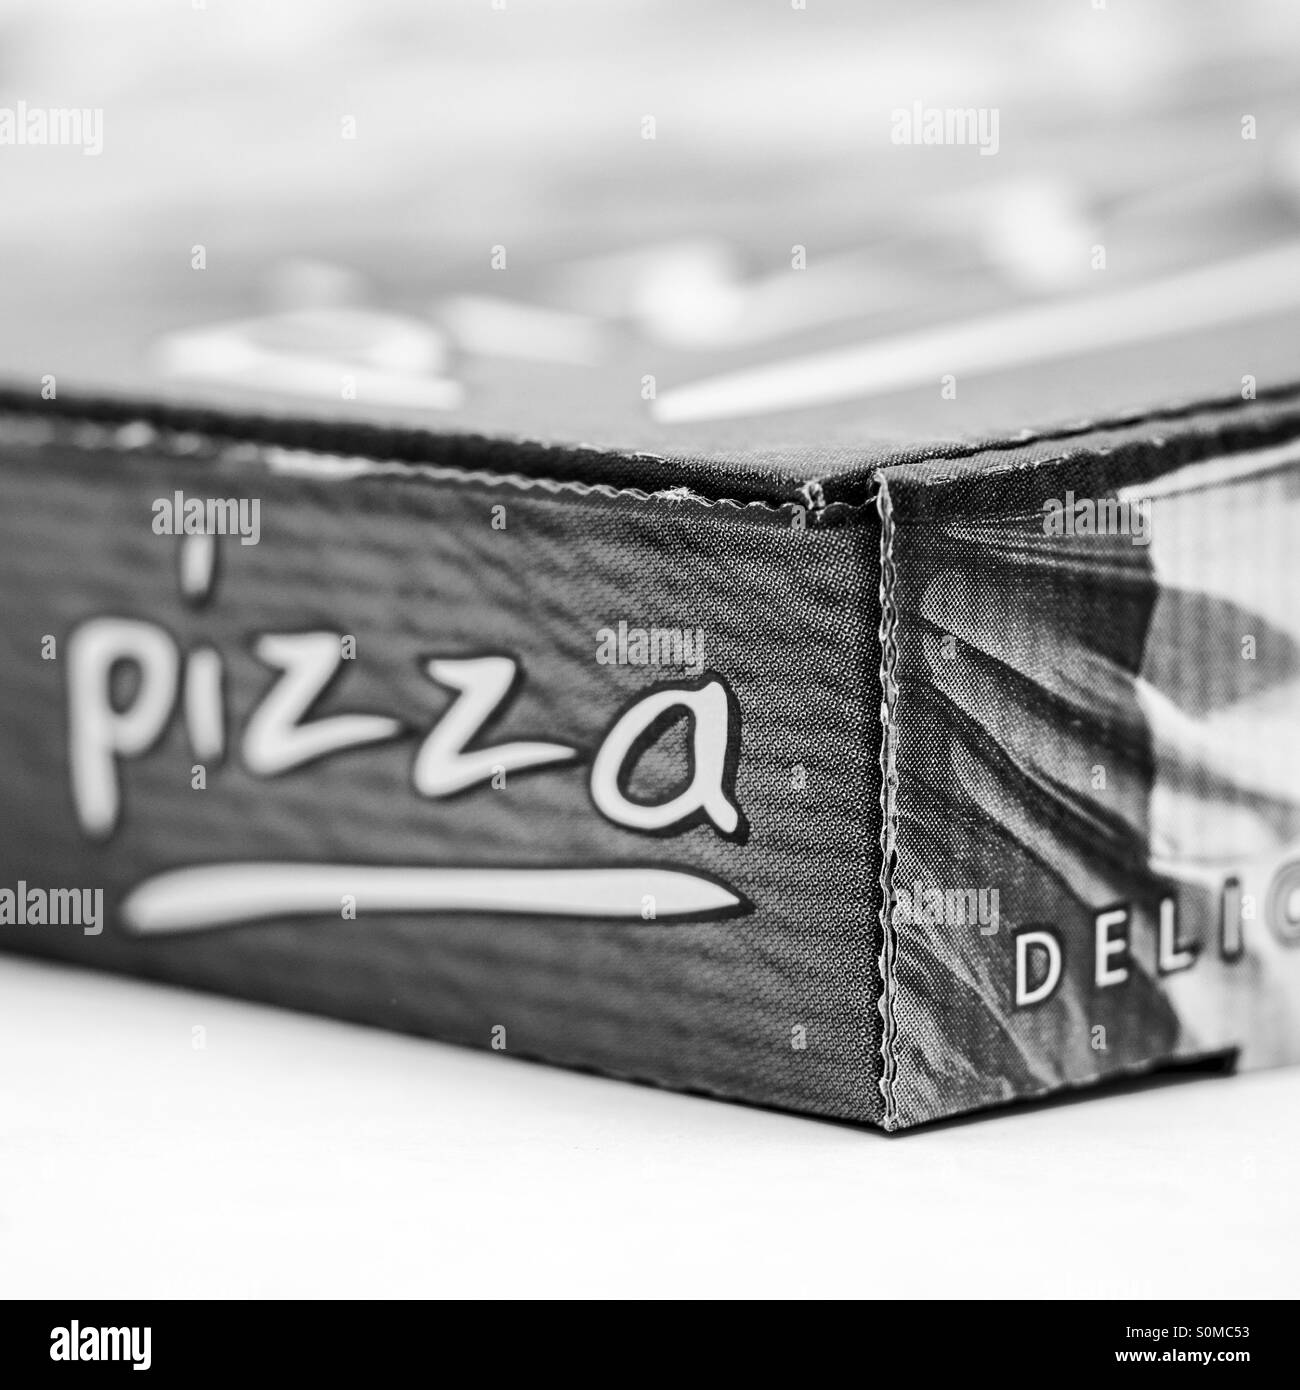 Close up of a take out pizza box - Stock Image